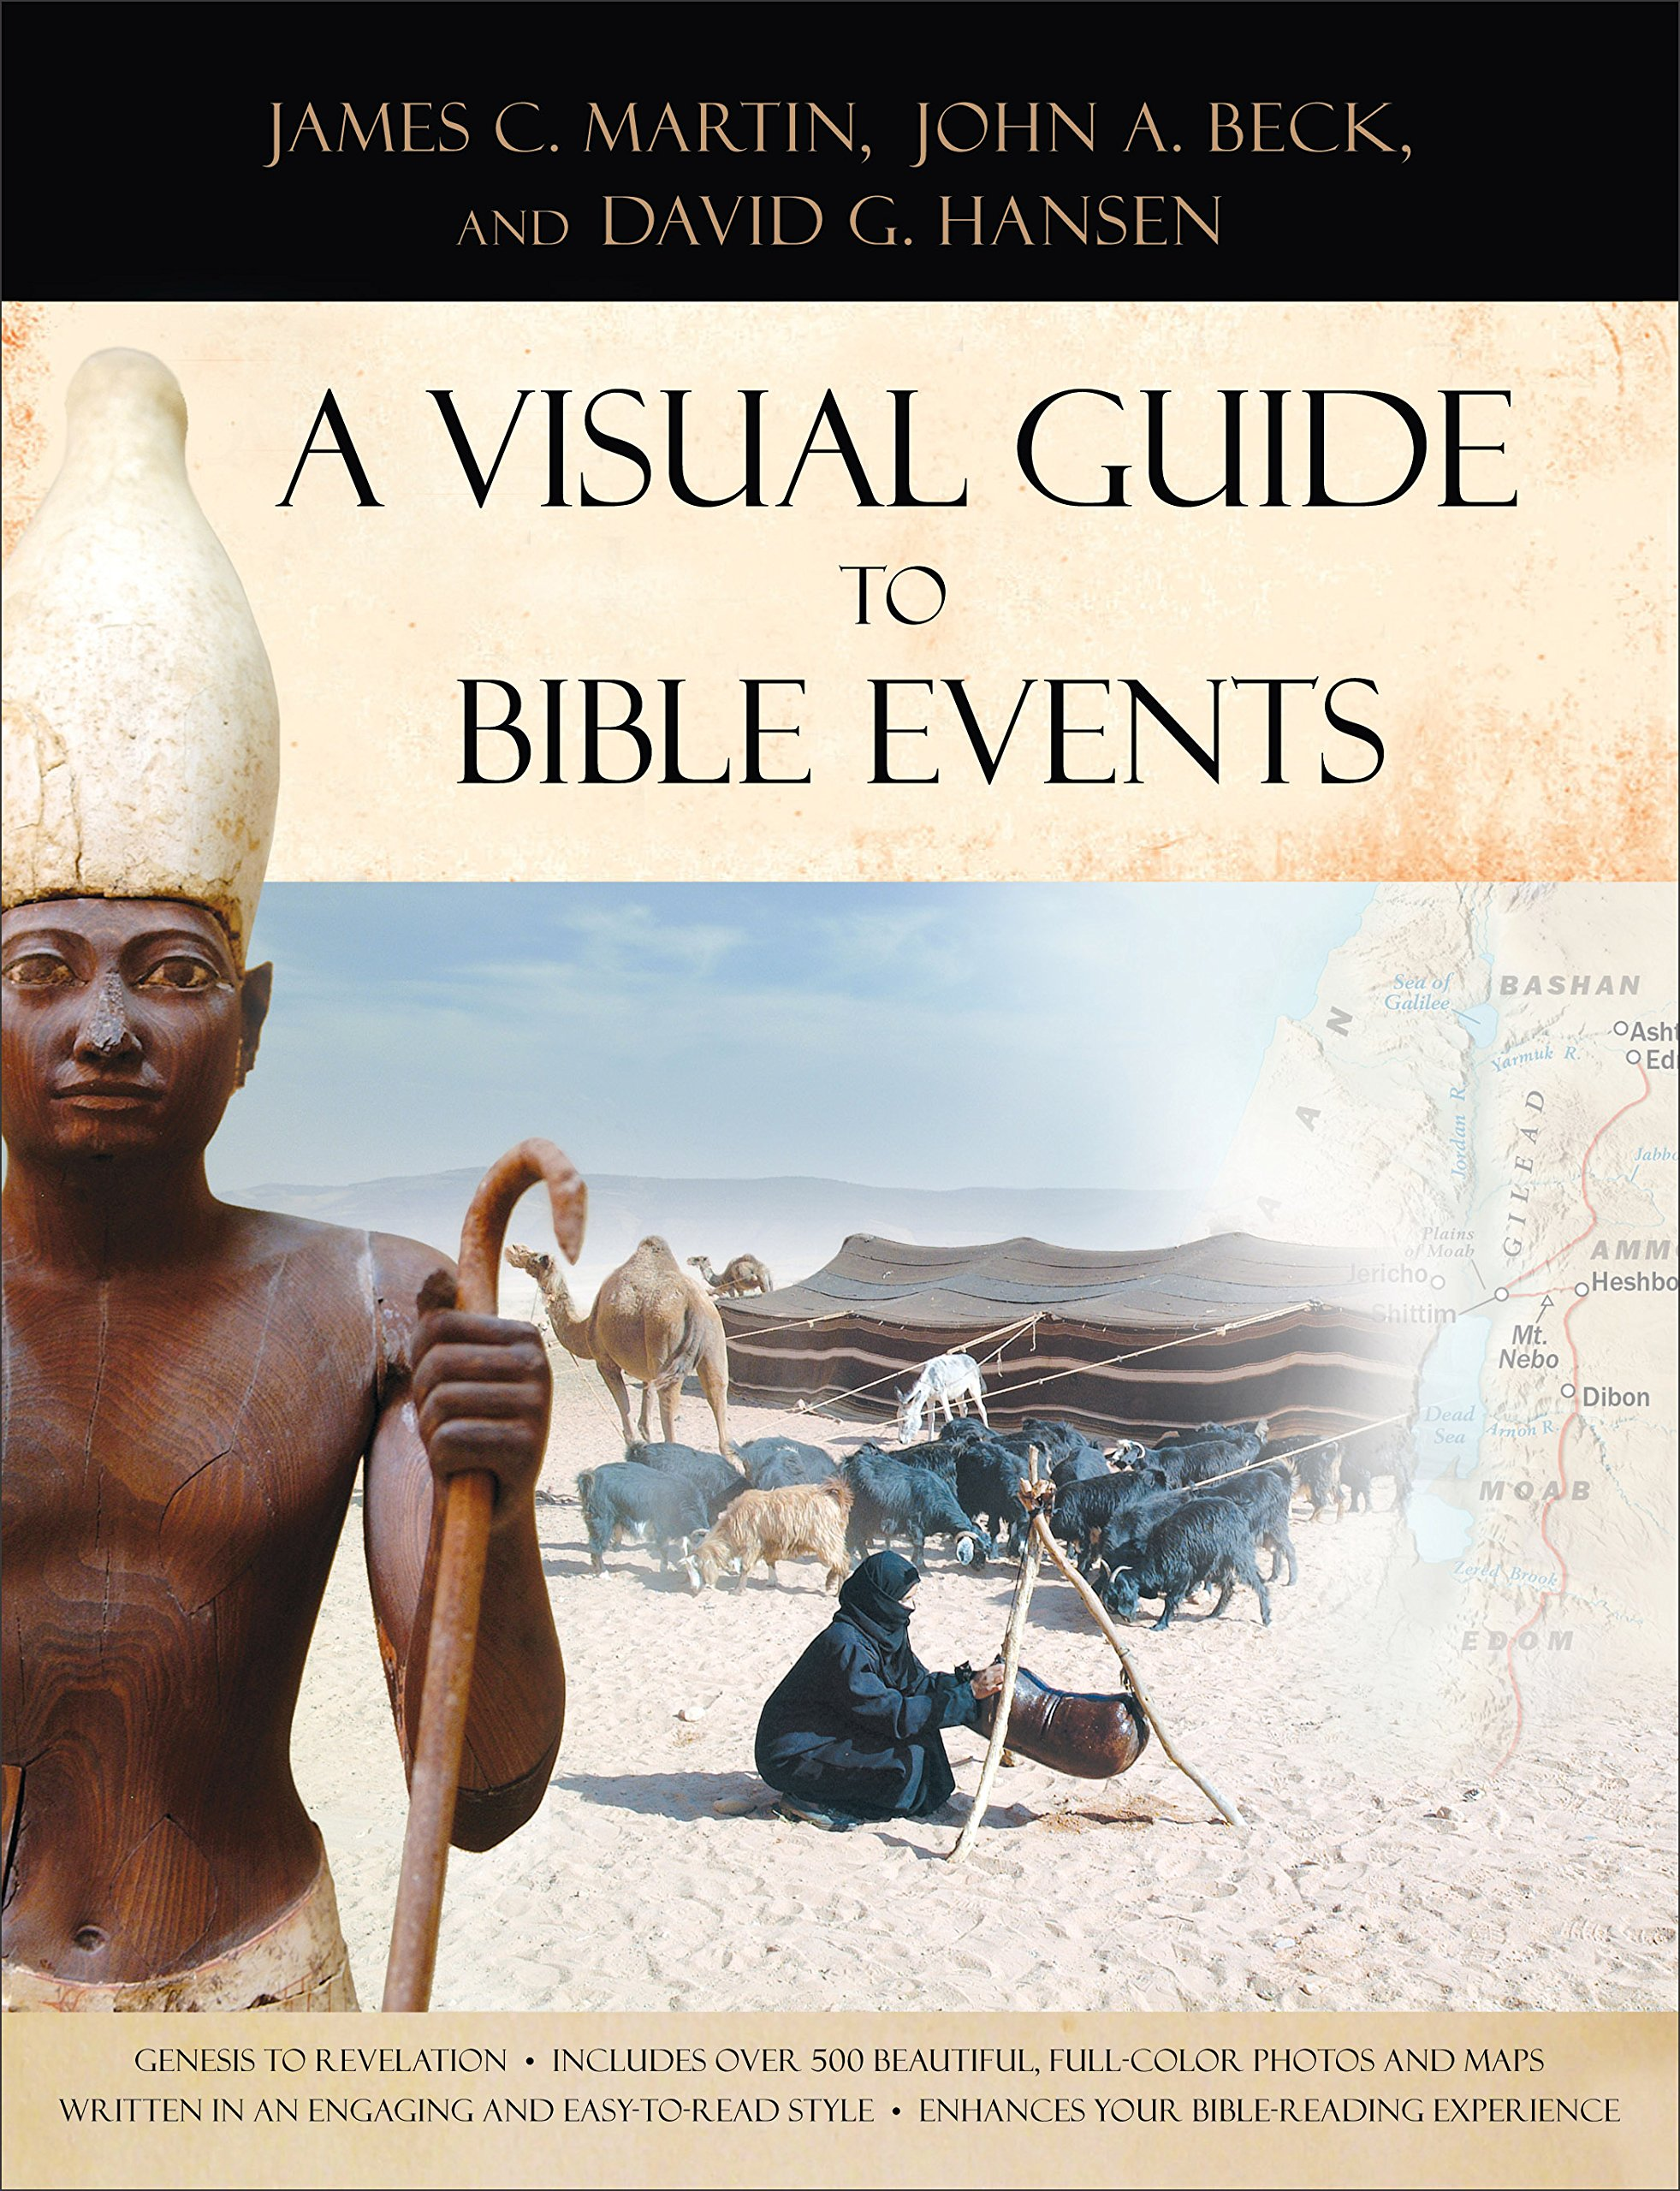 A Visual Guide To Bible Events: Fascinating Insights Into Where They  Happened And Why: James C Martin, John A Beck, David G Hansen:  9780801017278: